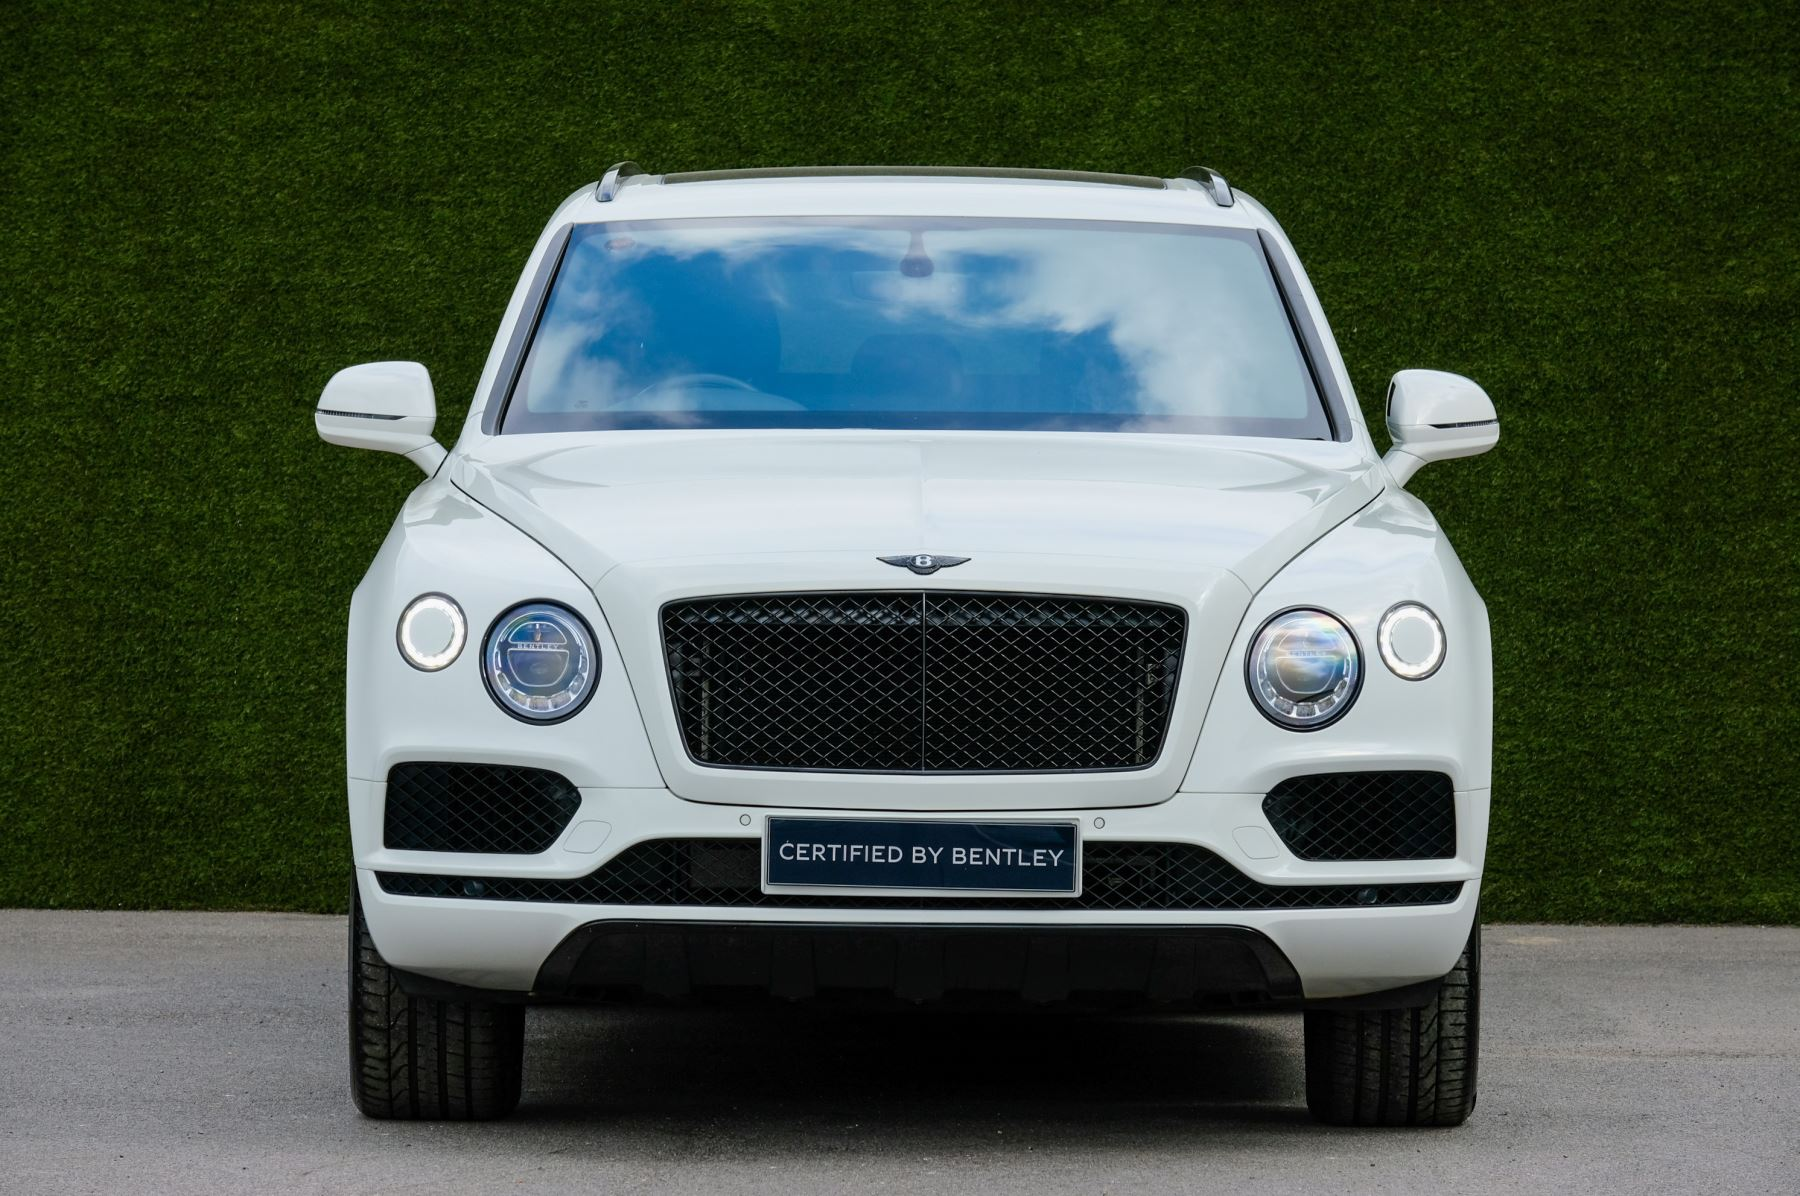 Bentley Bentayga 4.0 V8 5dr - Mulliner Driving Specification with 22 Inch Five Spoke Direction Alloys  image 2